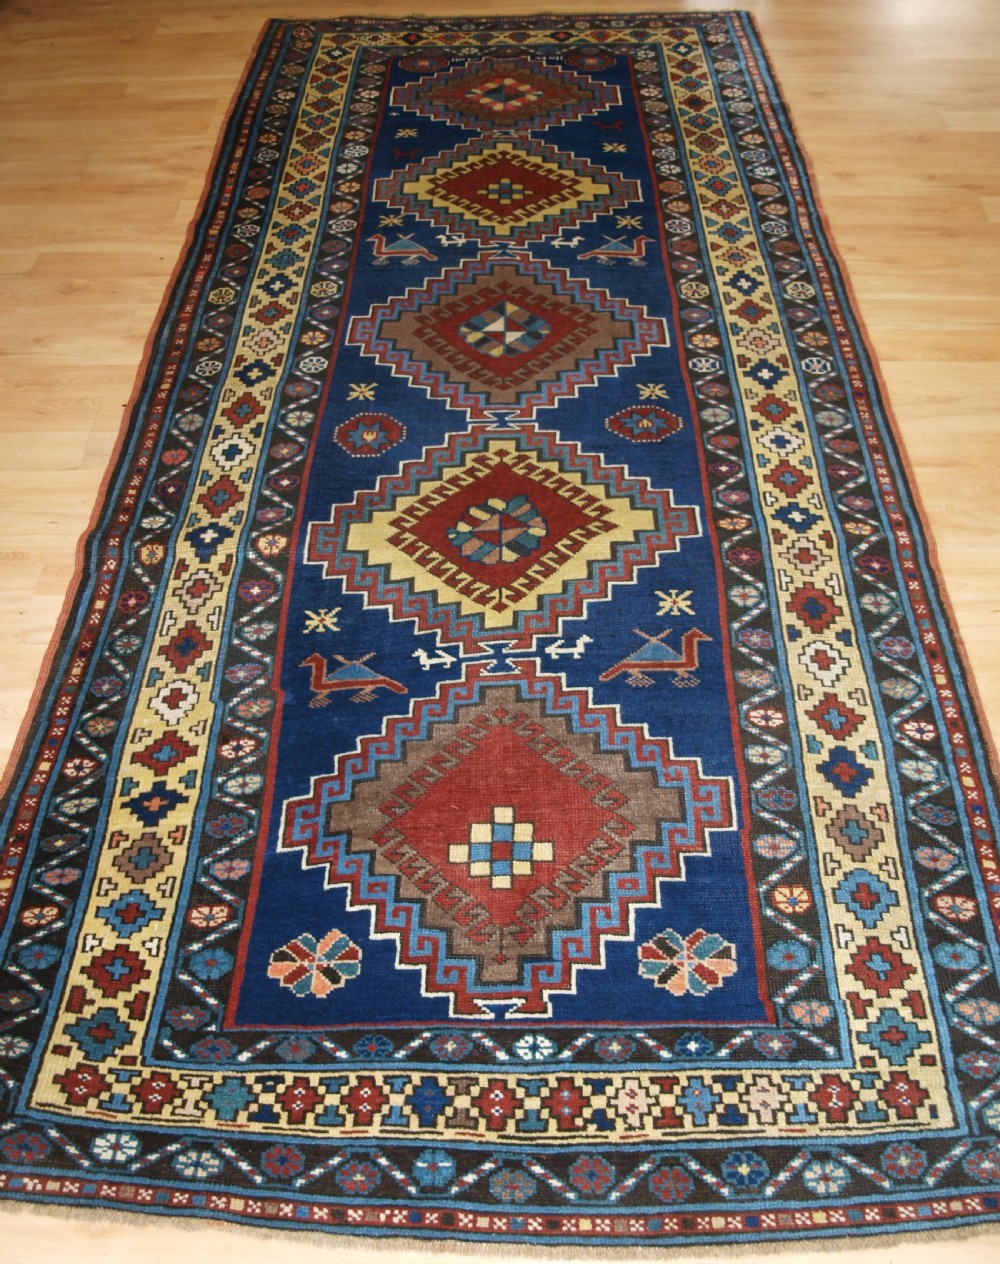 antique caucasian kazak long rug repeat medallion design superb condition circa 1900